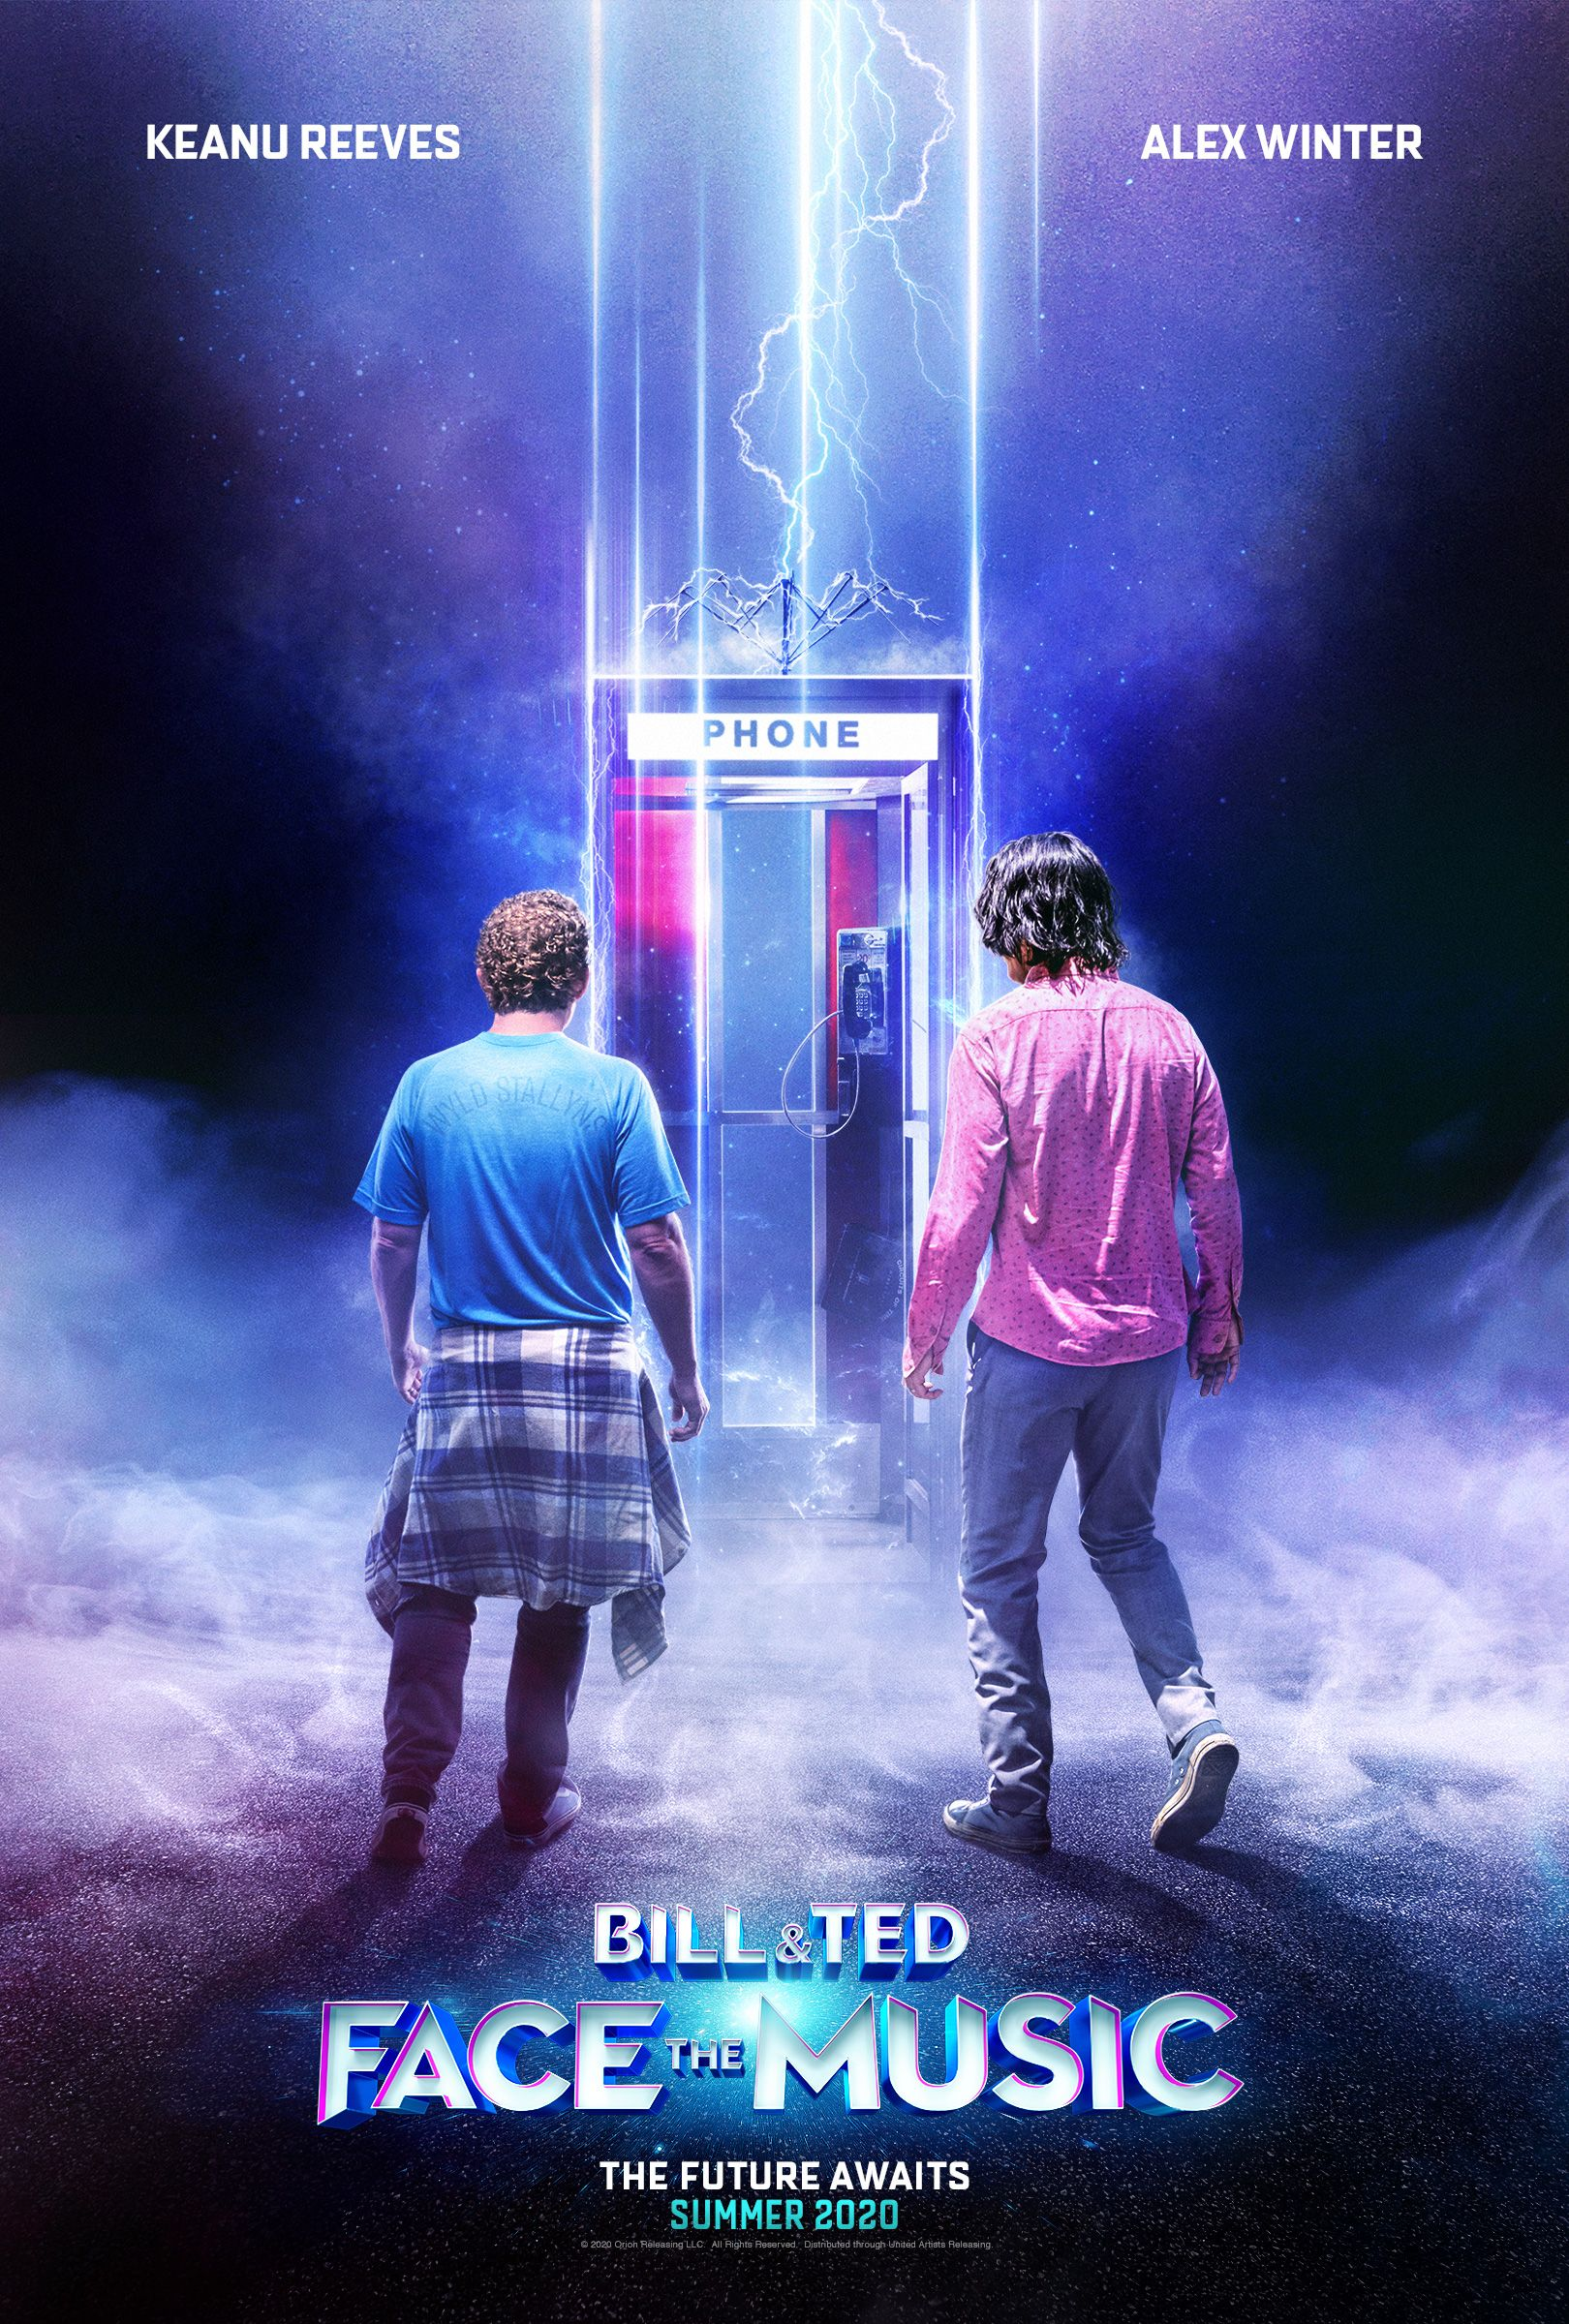 Bill And Ted Face The Music Trailer Reaction In 2020 Face The Music Keanu Reeves Alex Winter